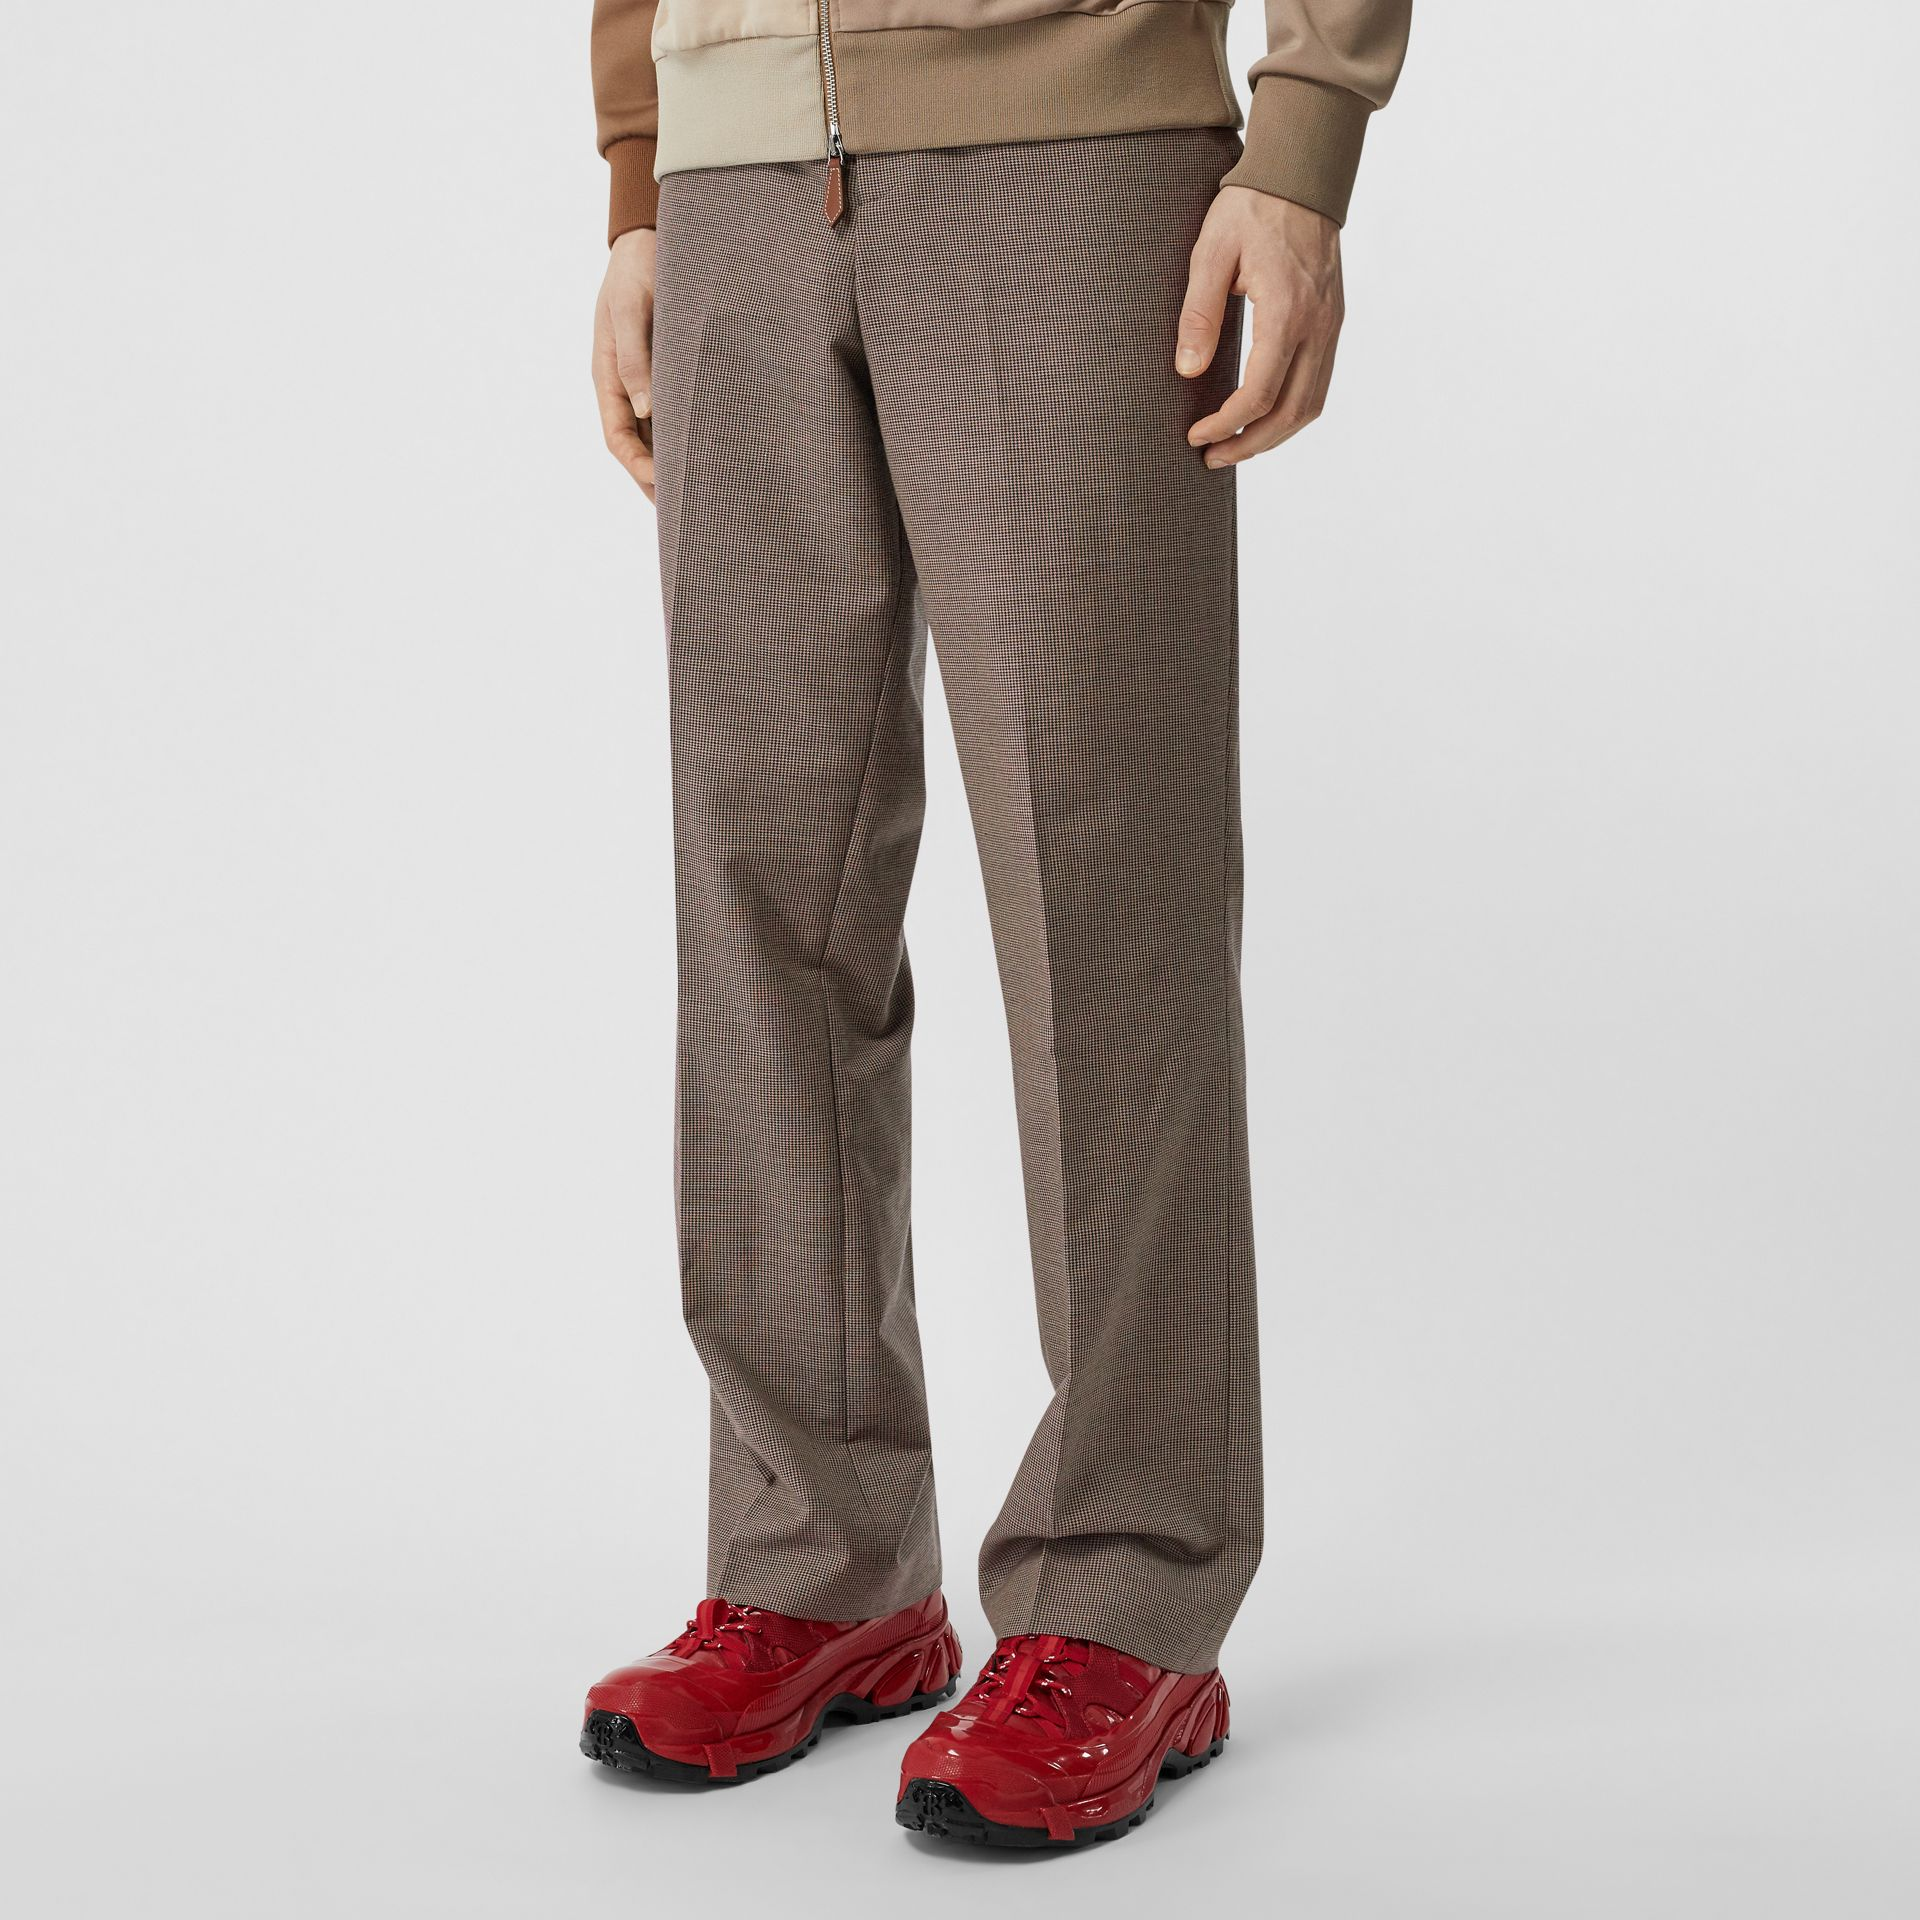 Pocket Detail Wool Tailored Trousers in Beige - Men | Burberry - gallery image 5